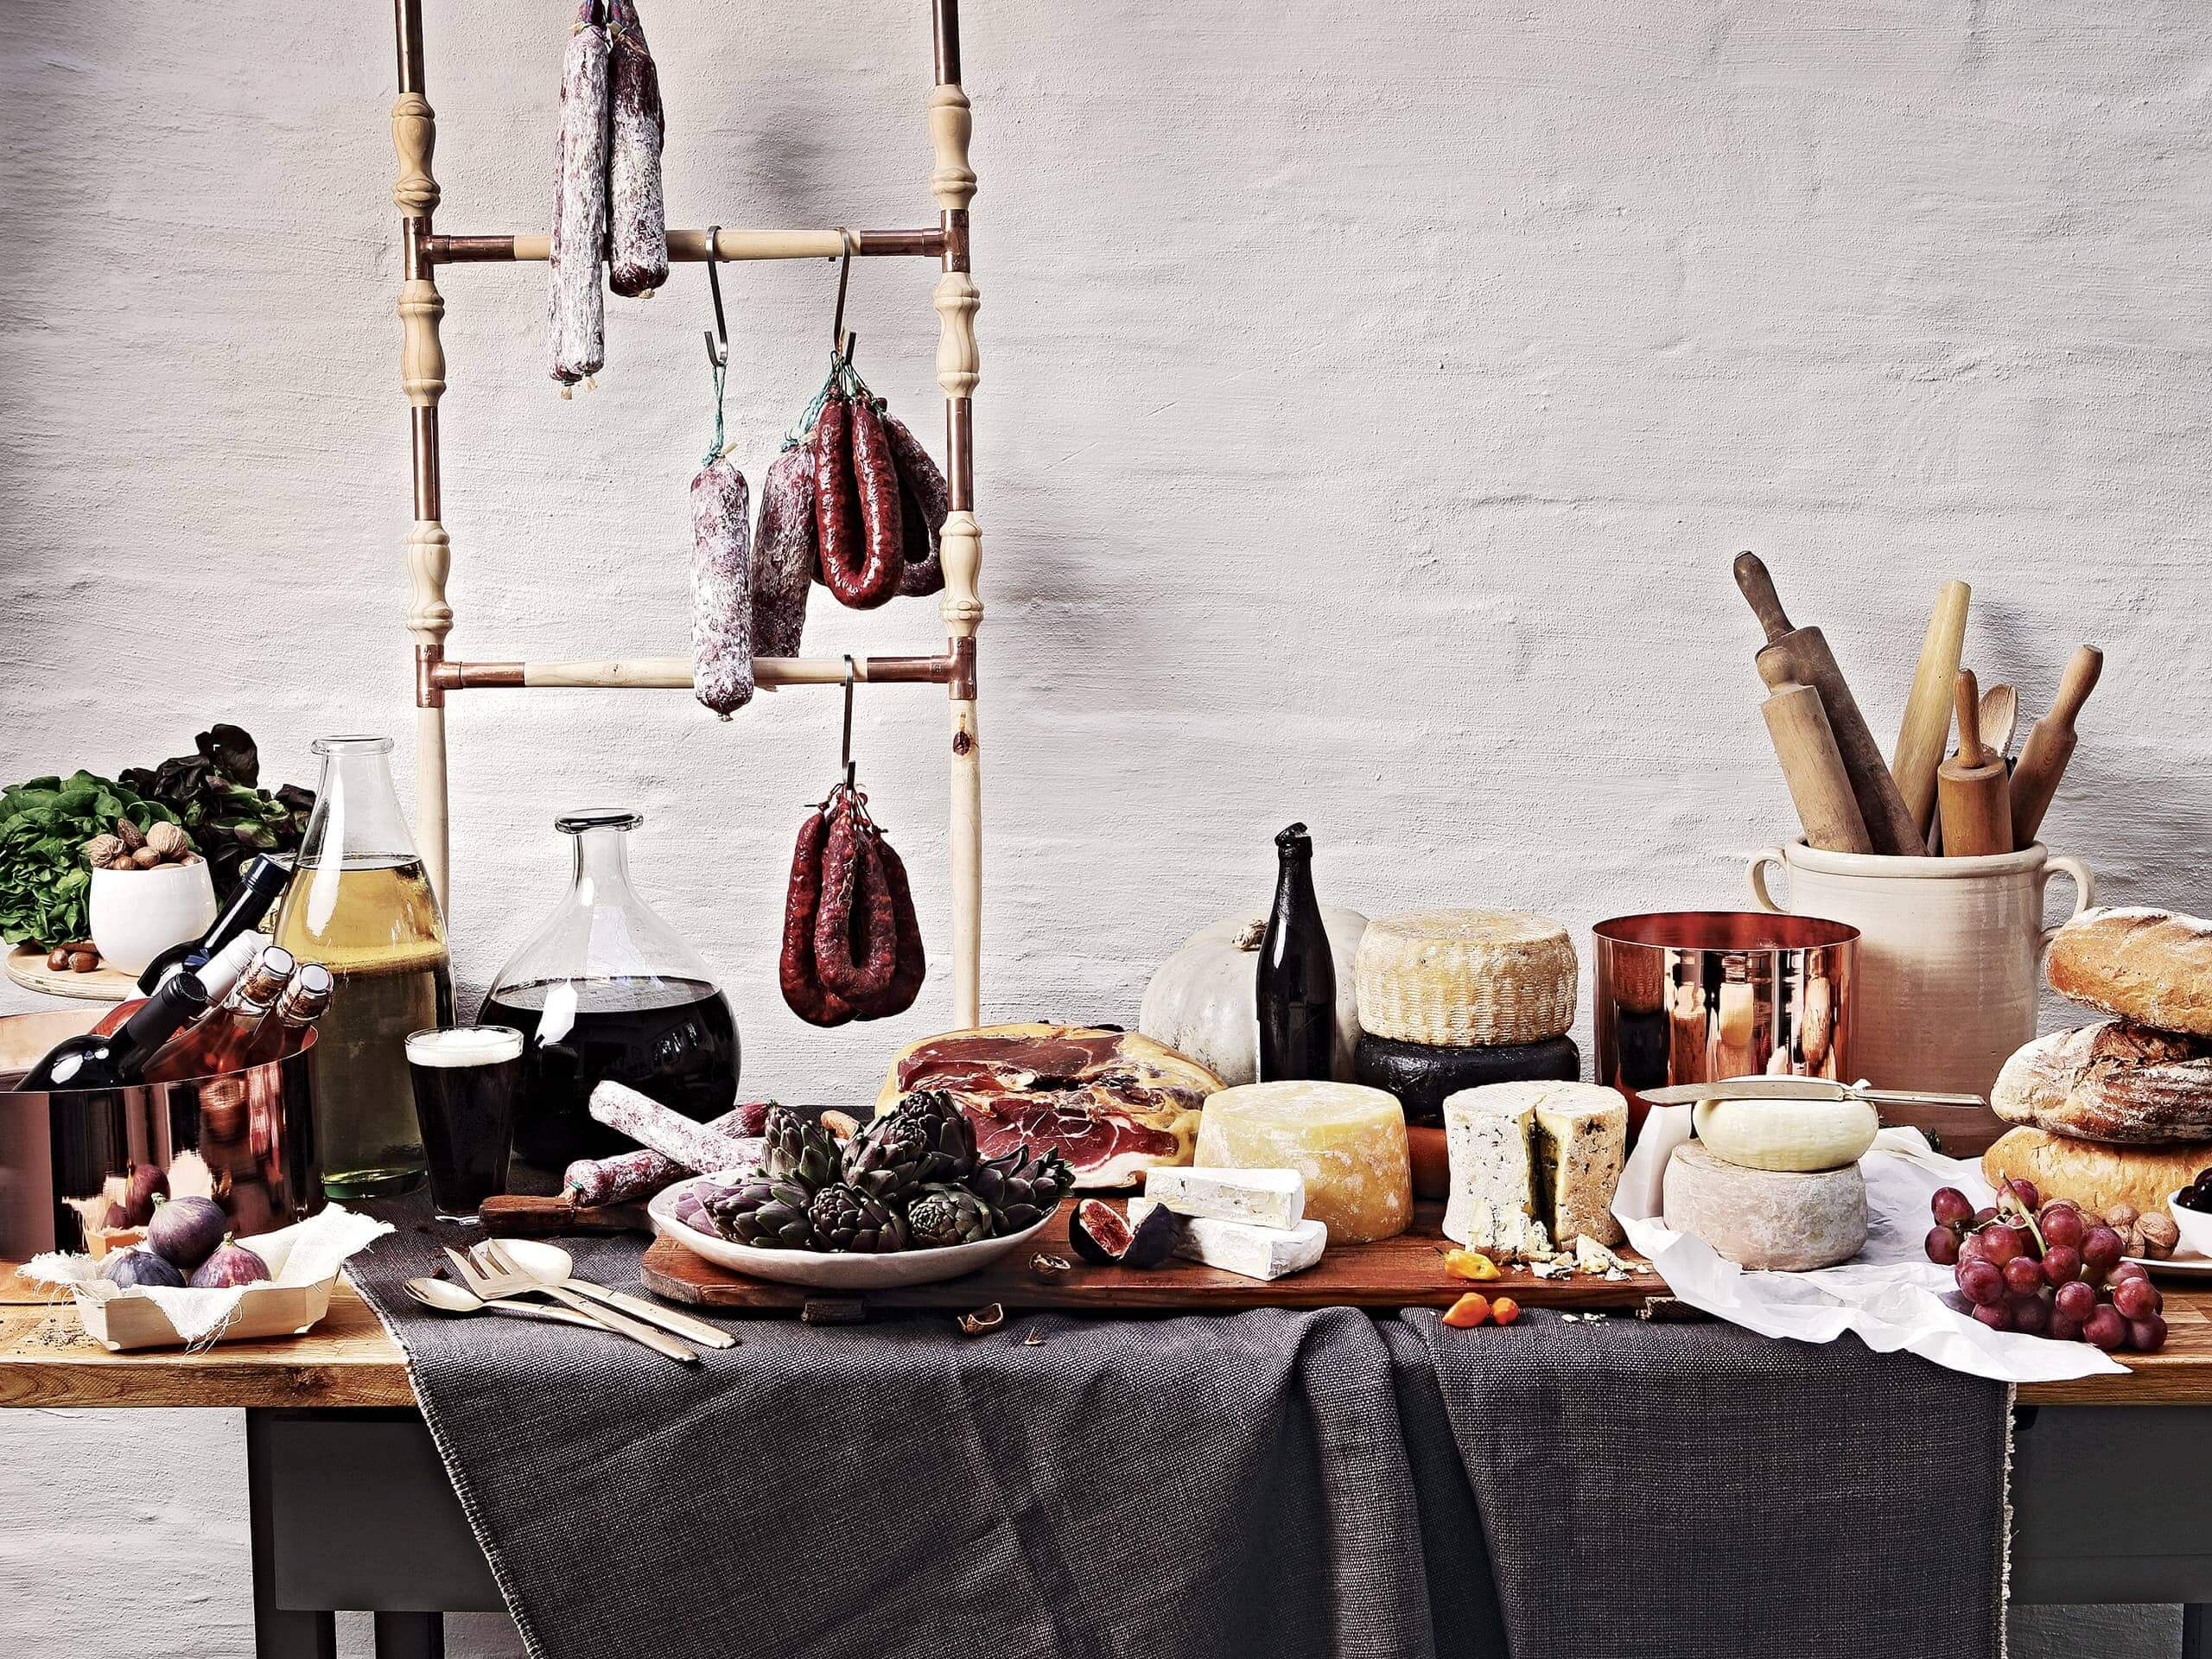 A delectable spread of wines, oils, cheeses, meats, fruits and breads. Elsa Young Photography.